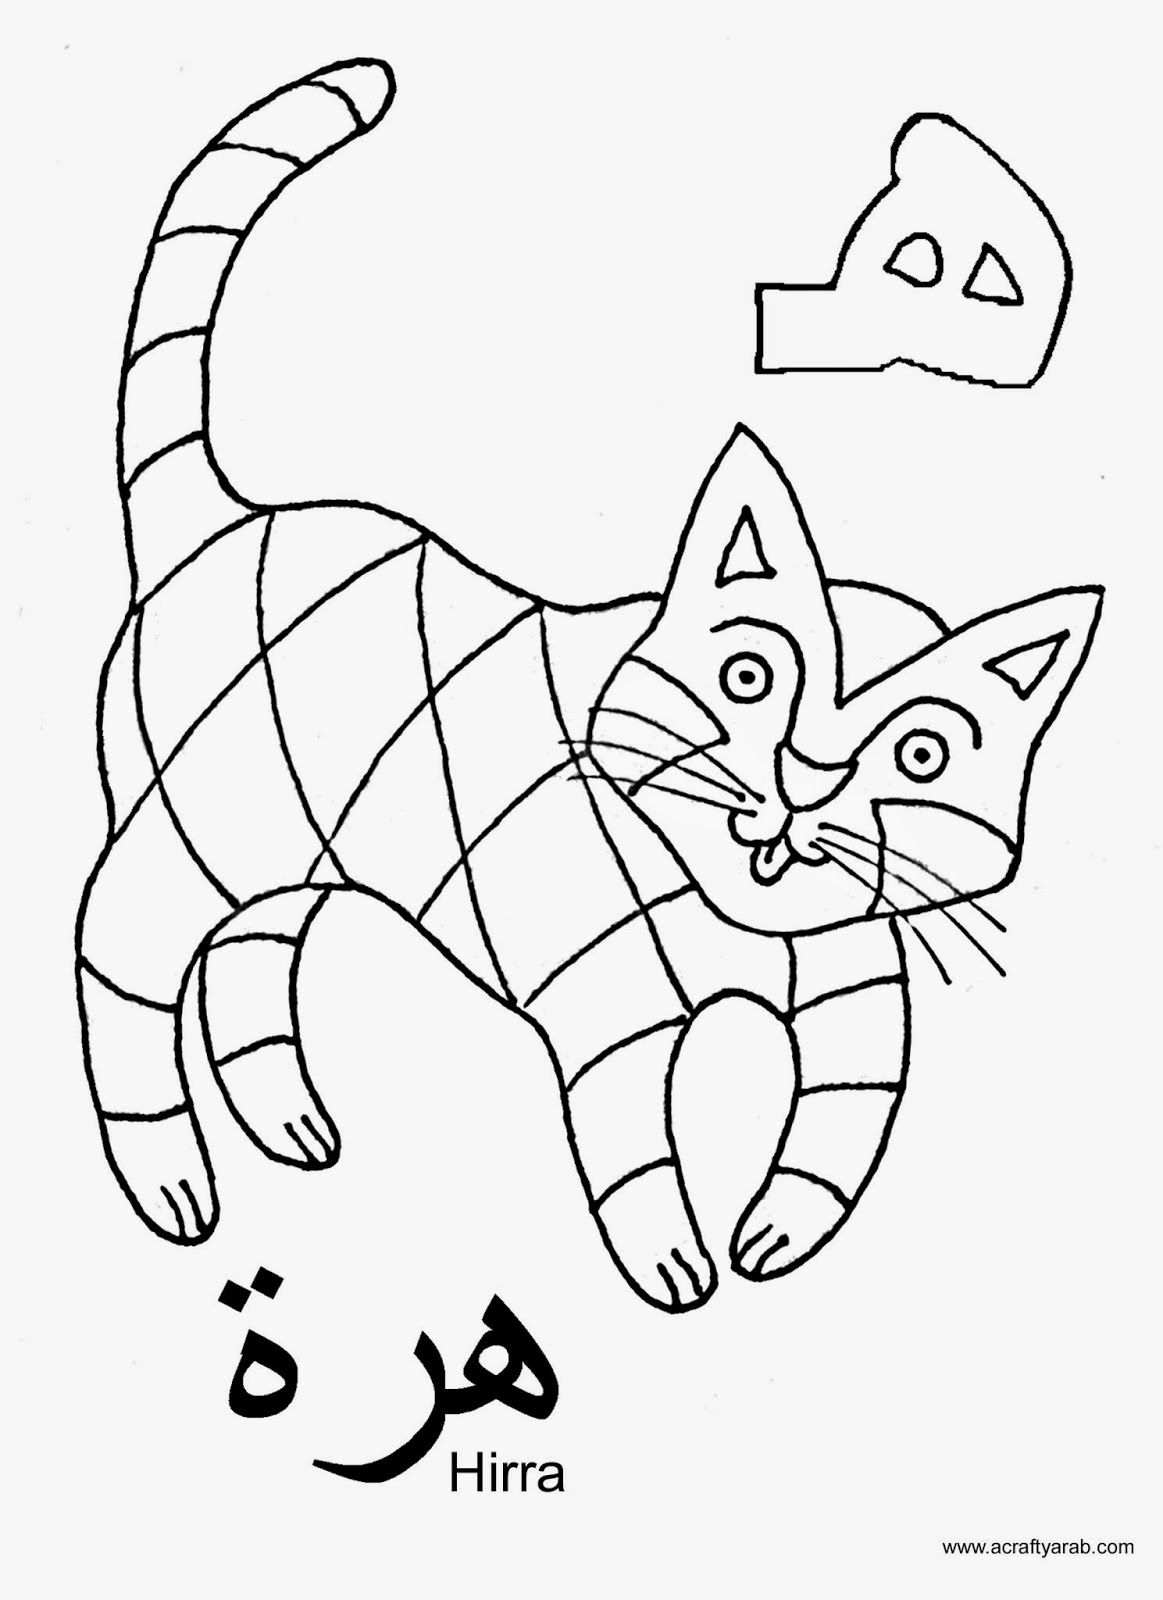 A Crafty Arab Arabic Alphabet Coloring Pages Haa Is For Hirra Arabic Alphabet Alphabet Coloring Pages Alphabet Coloring